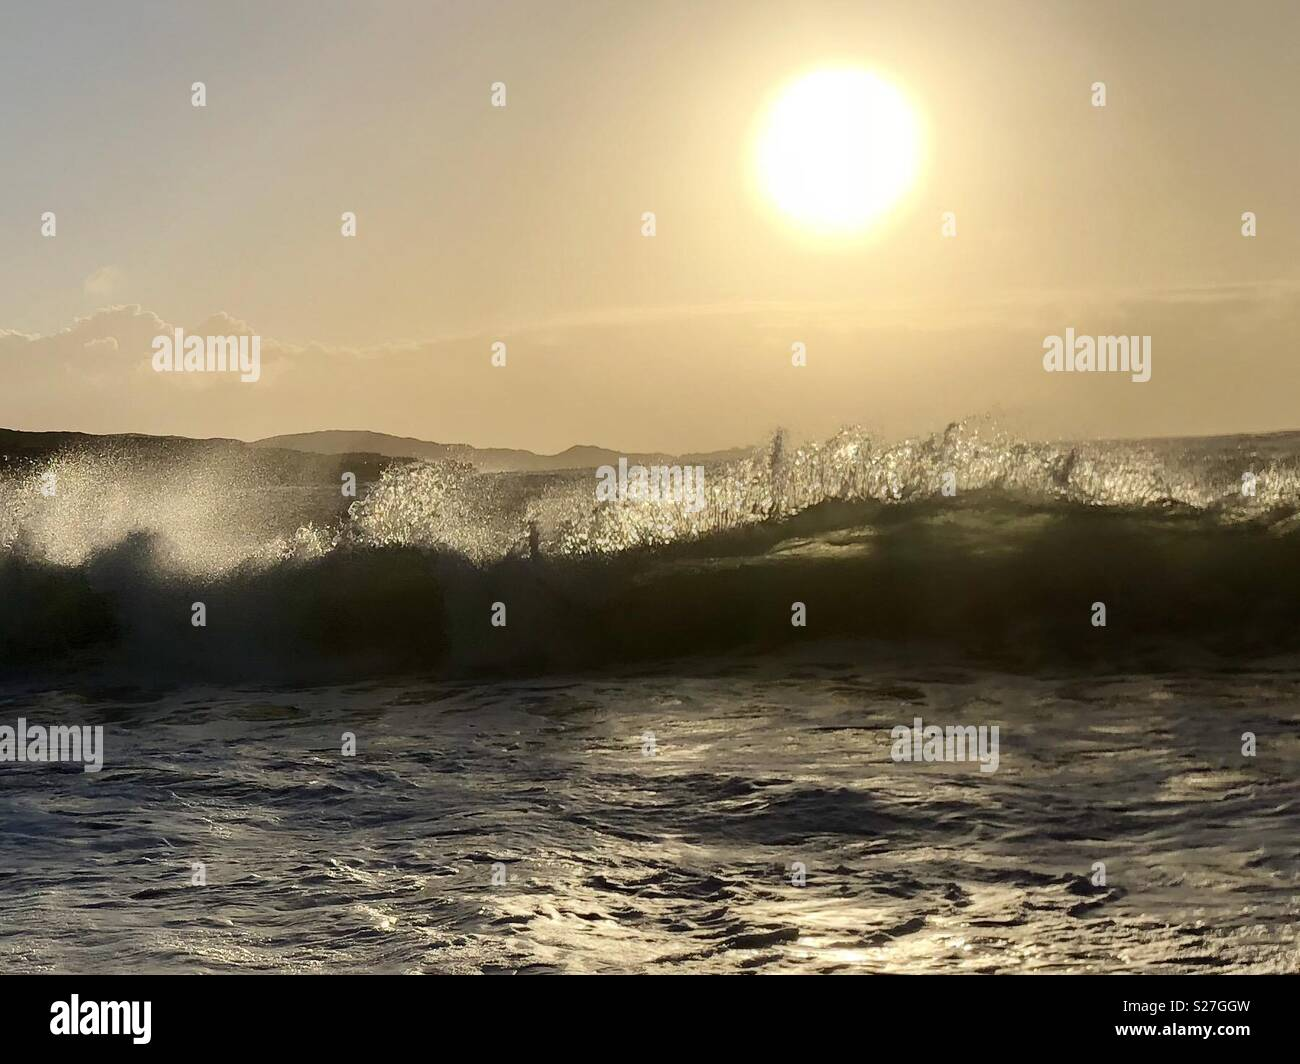 Wave at Sunset - Stock Image